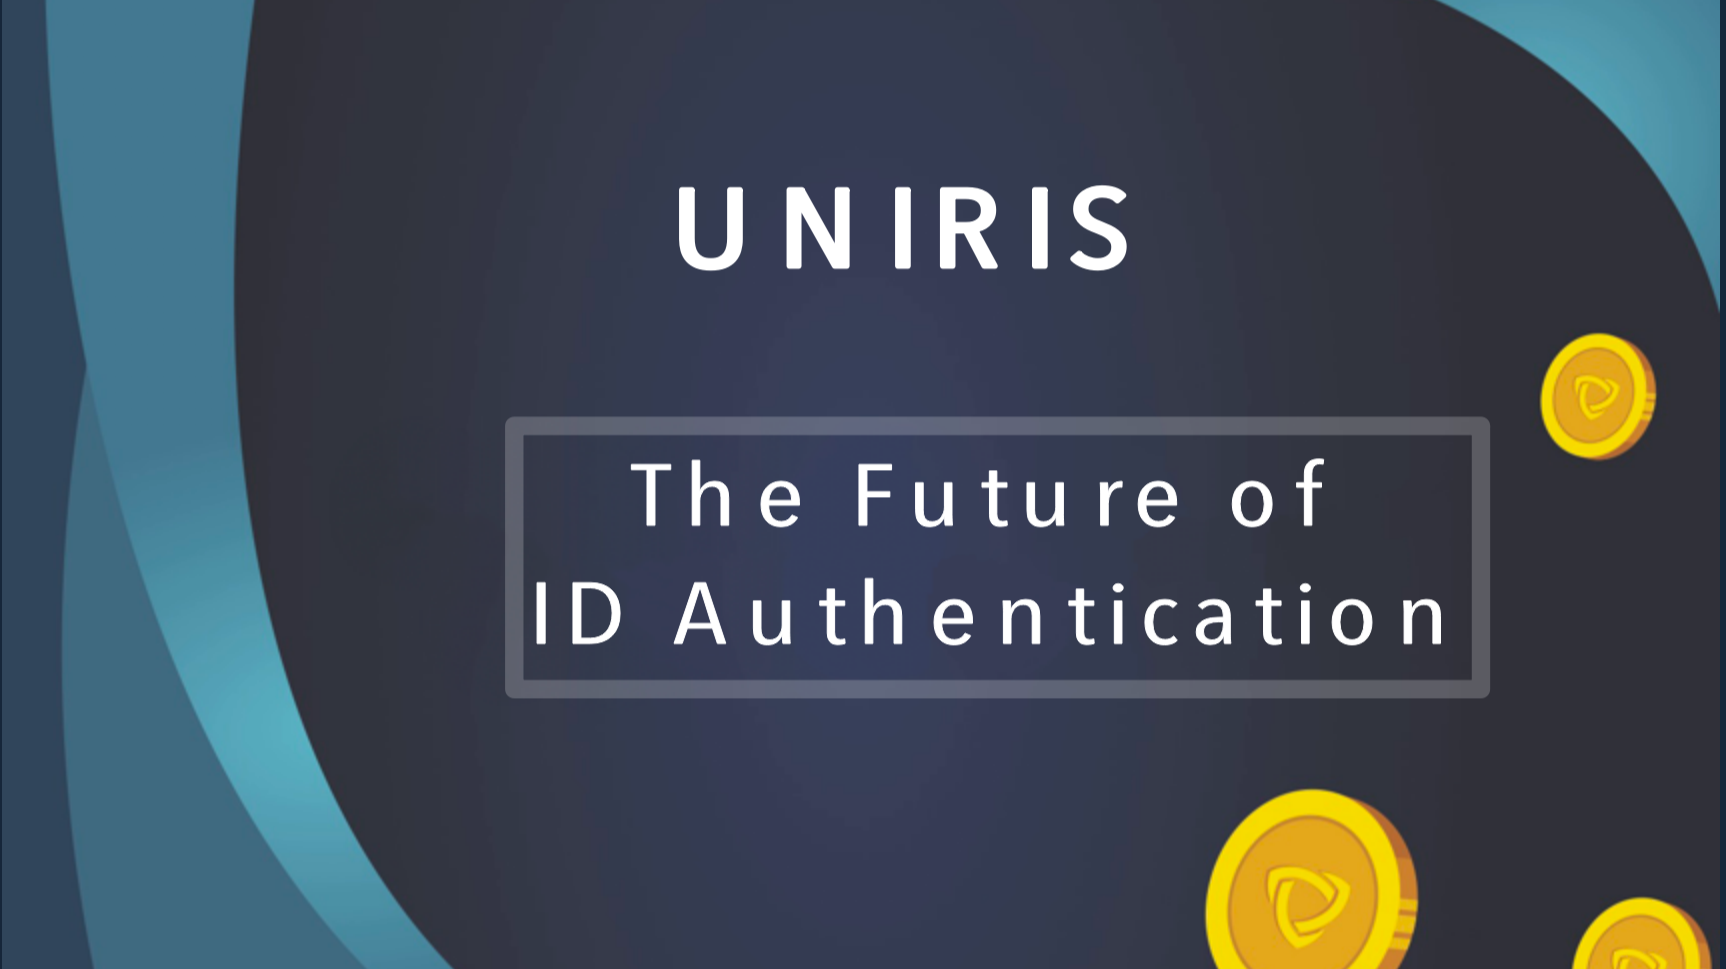 Uniris is the Future of ID Authentication